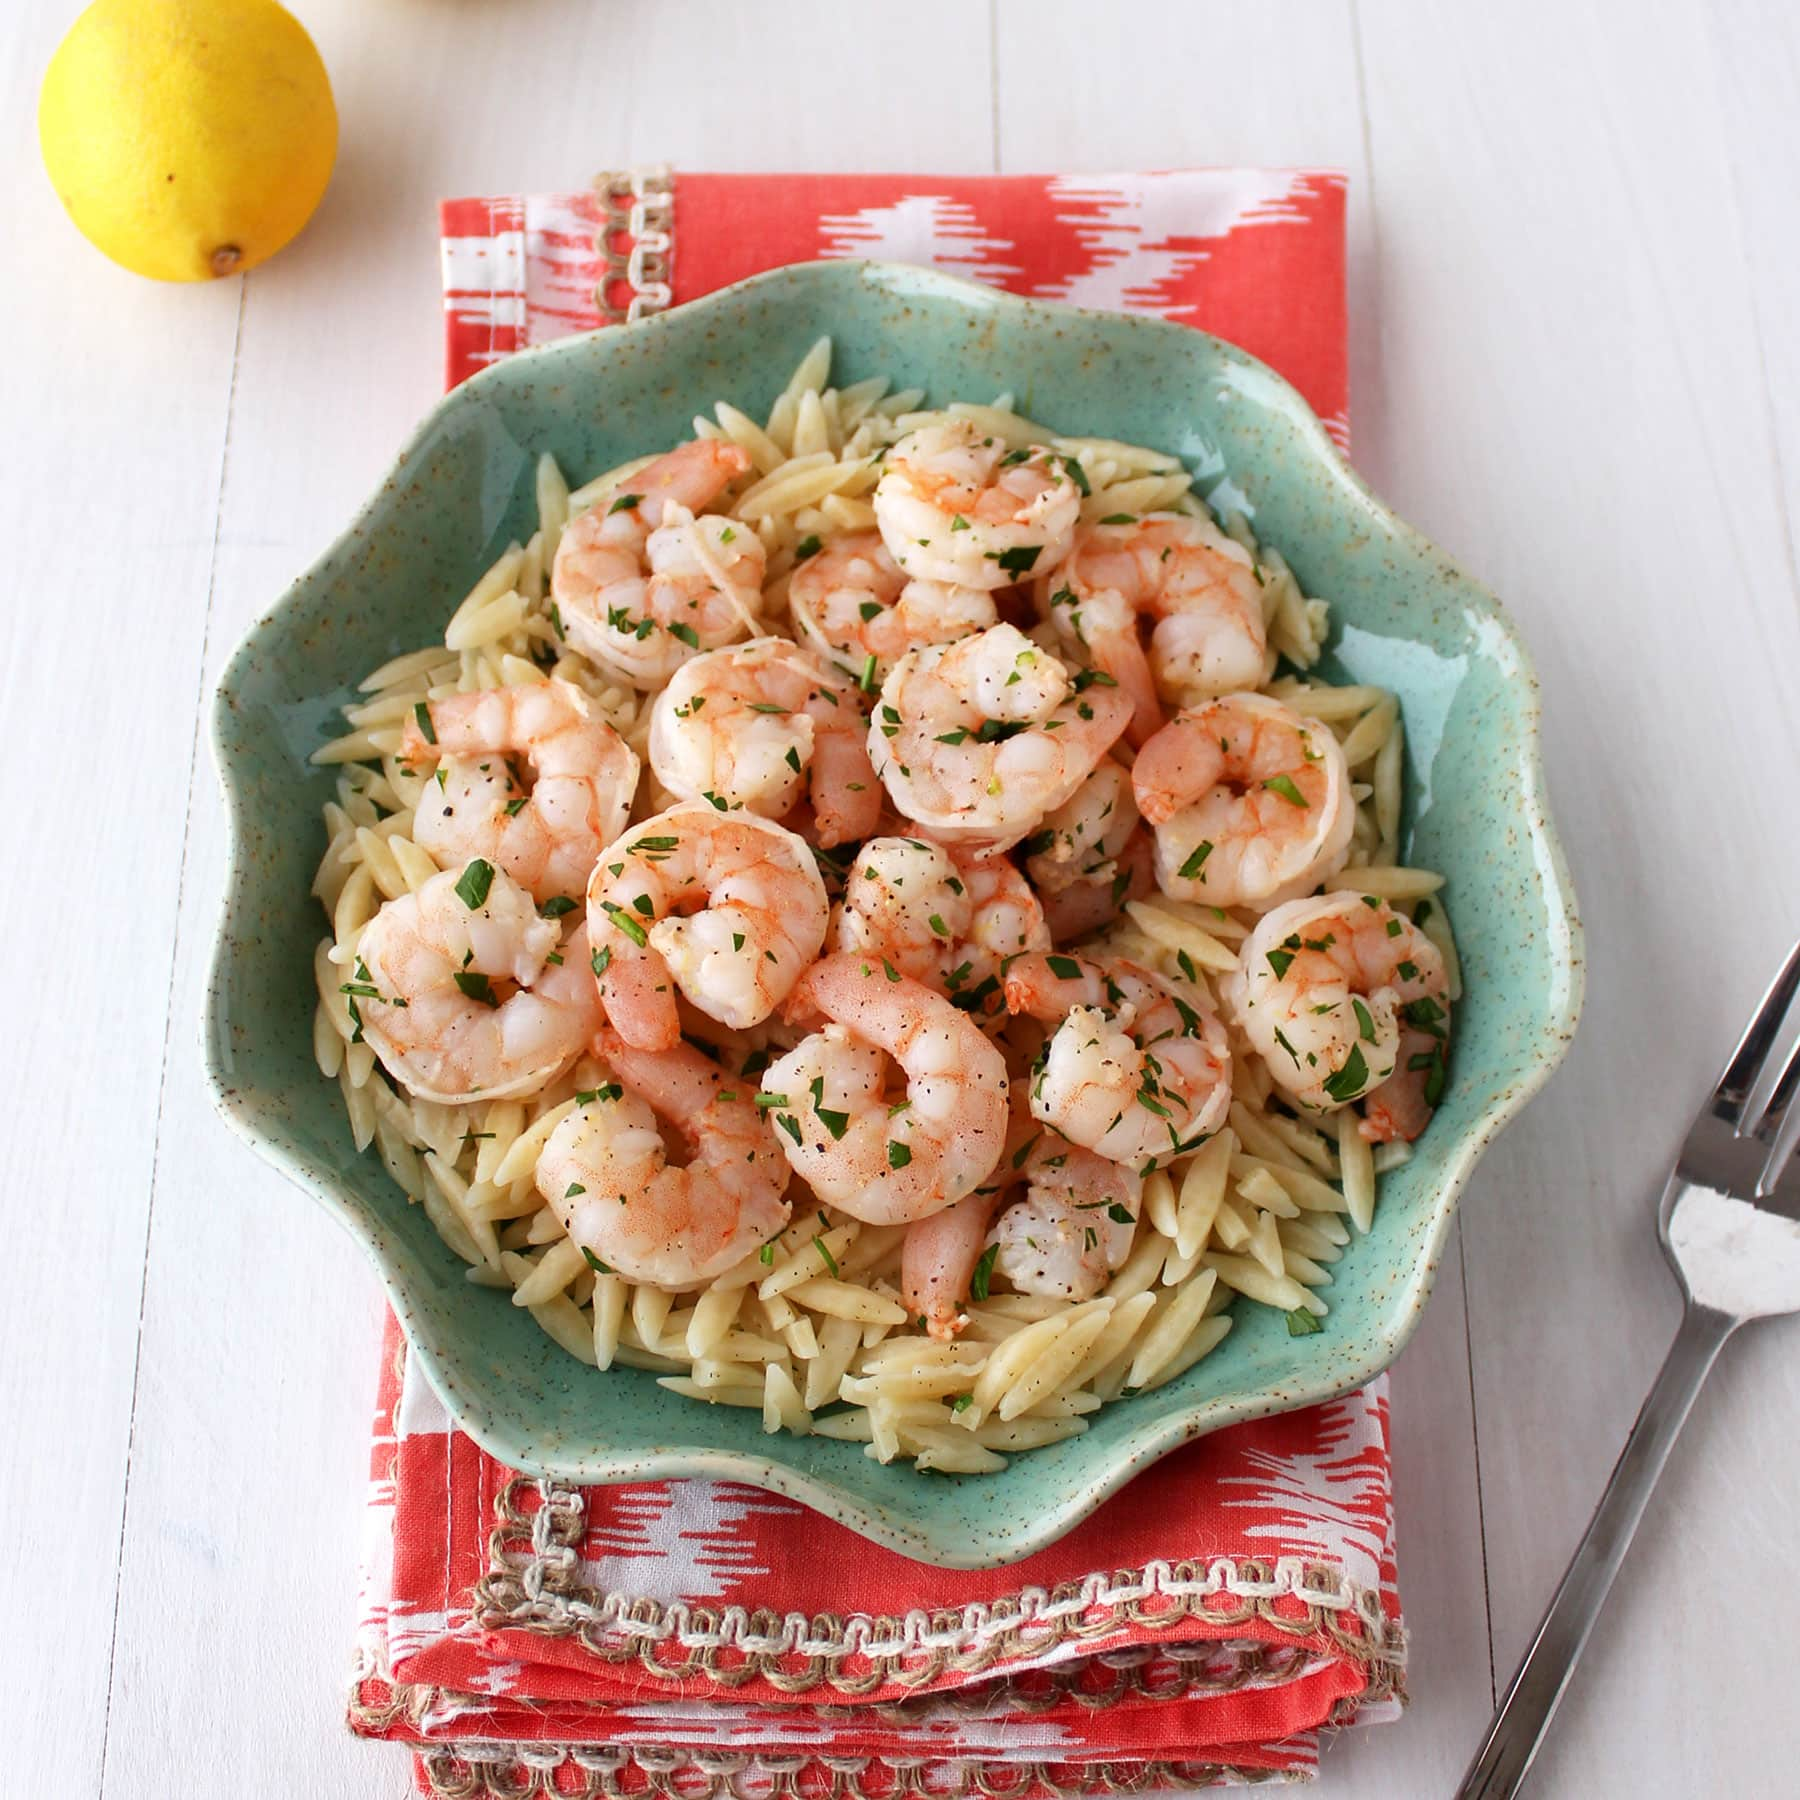 10 Minute Lemon Pepper Shrimp is super easy and fresh and goes well with so many things. It's a staple recipe in our house!